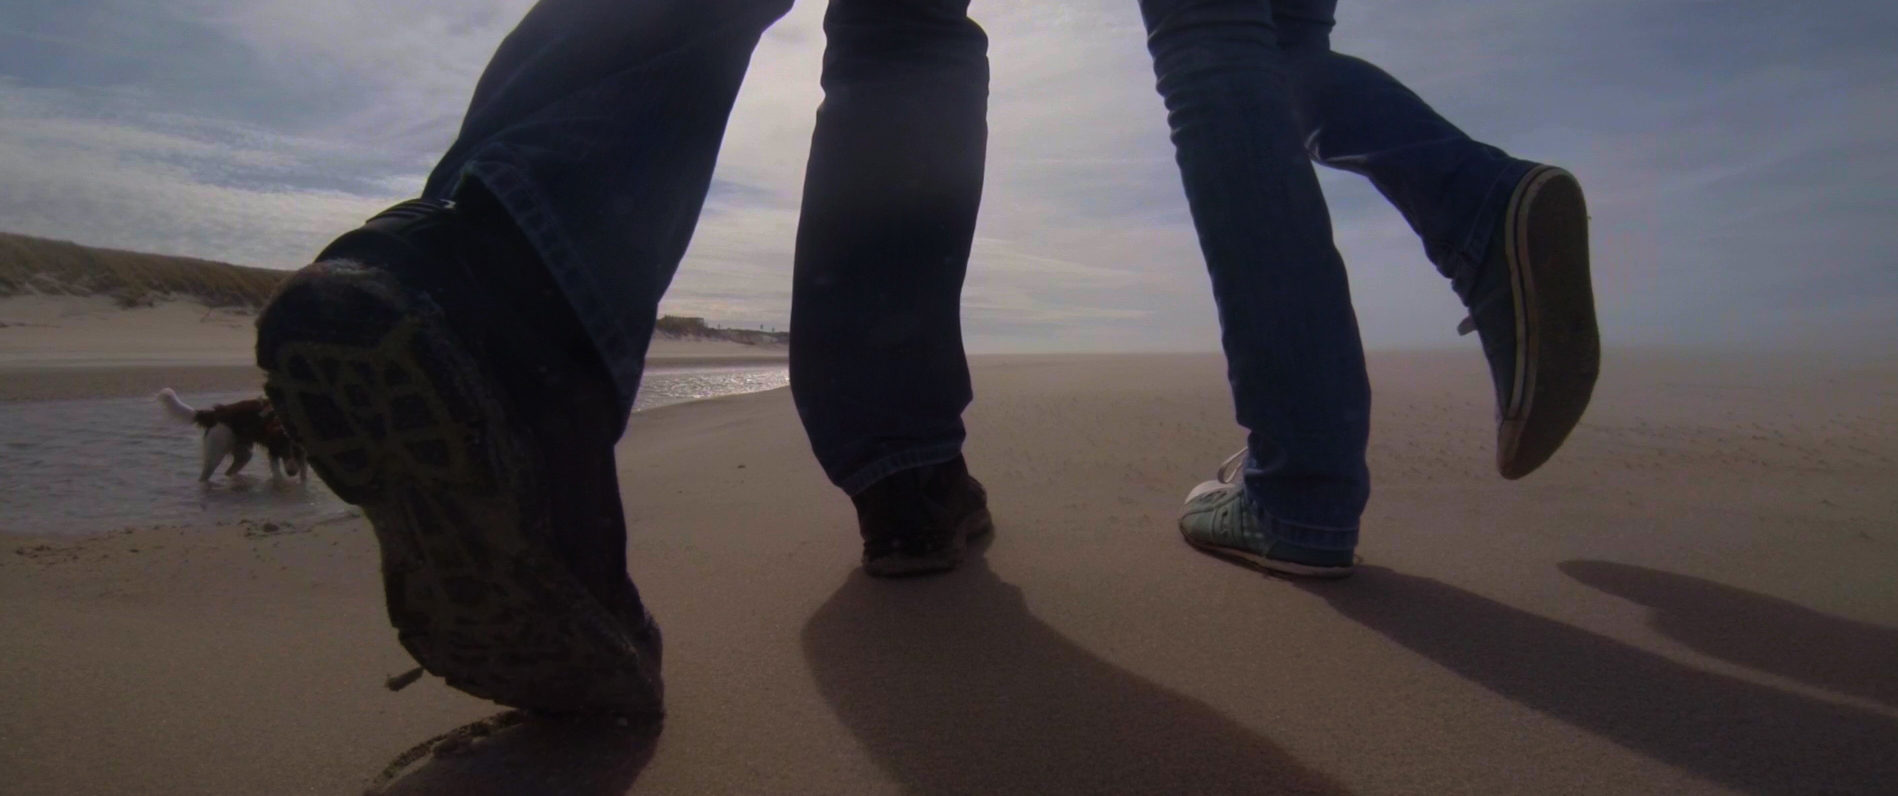 Texel – Das Video – 1 week in 1 minute